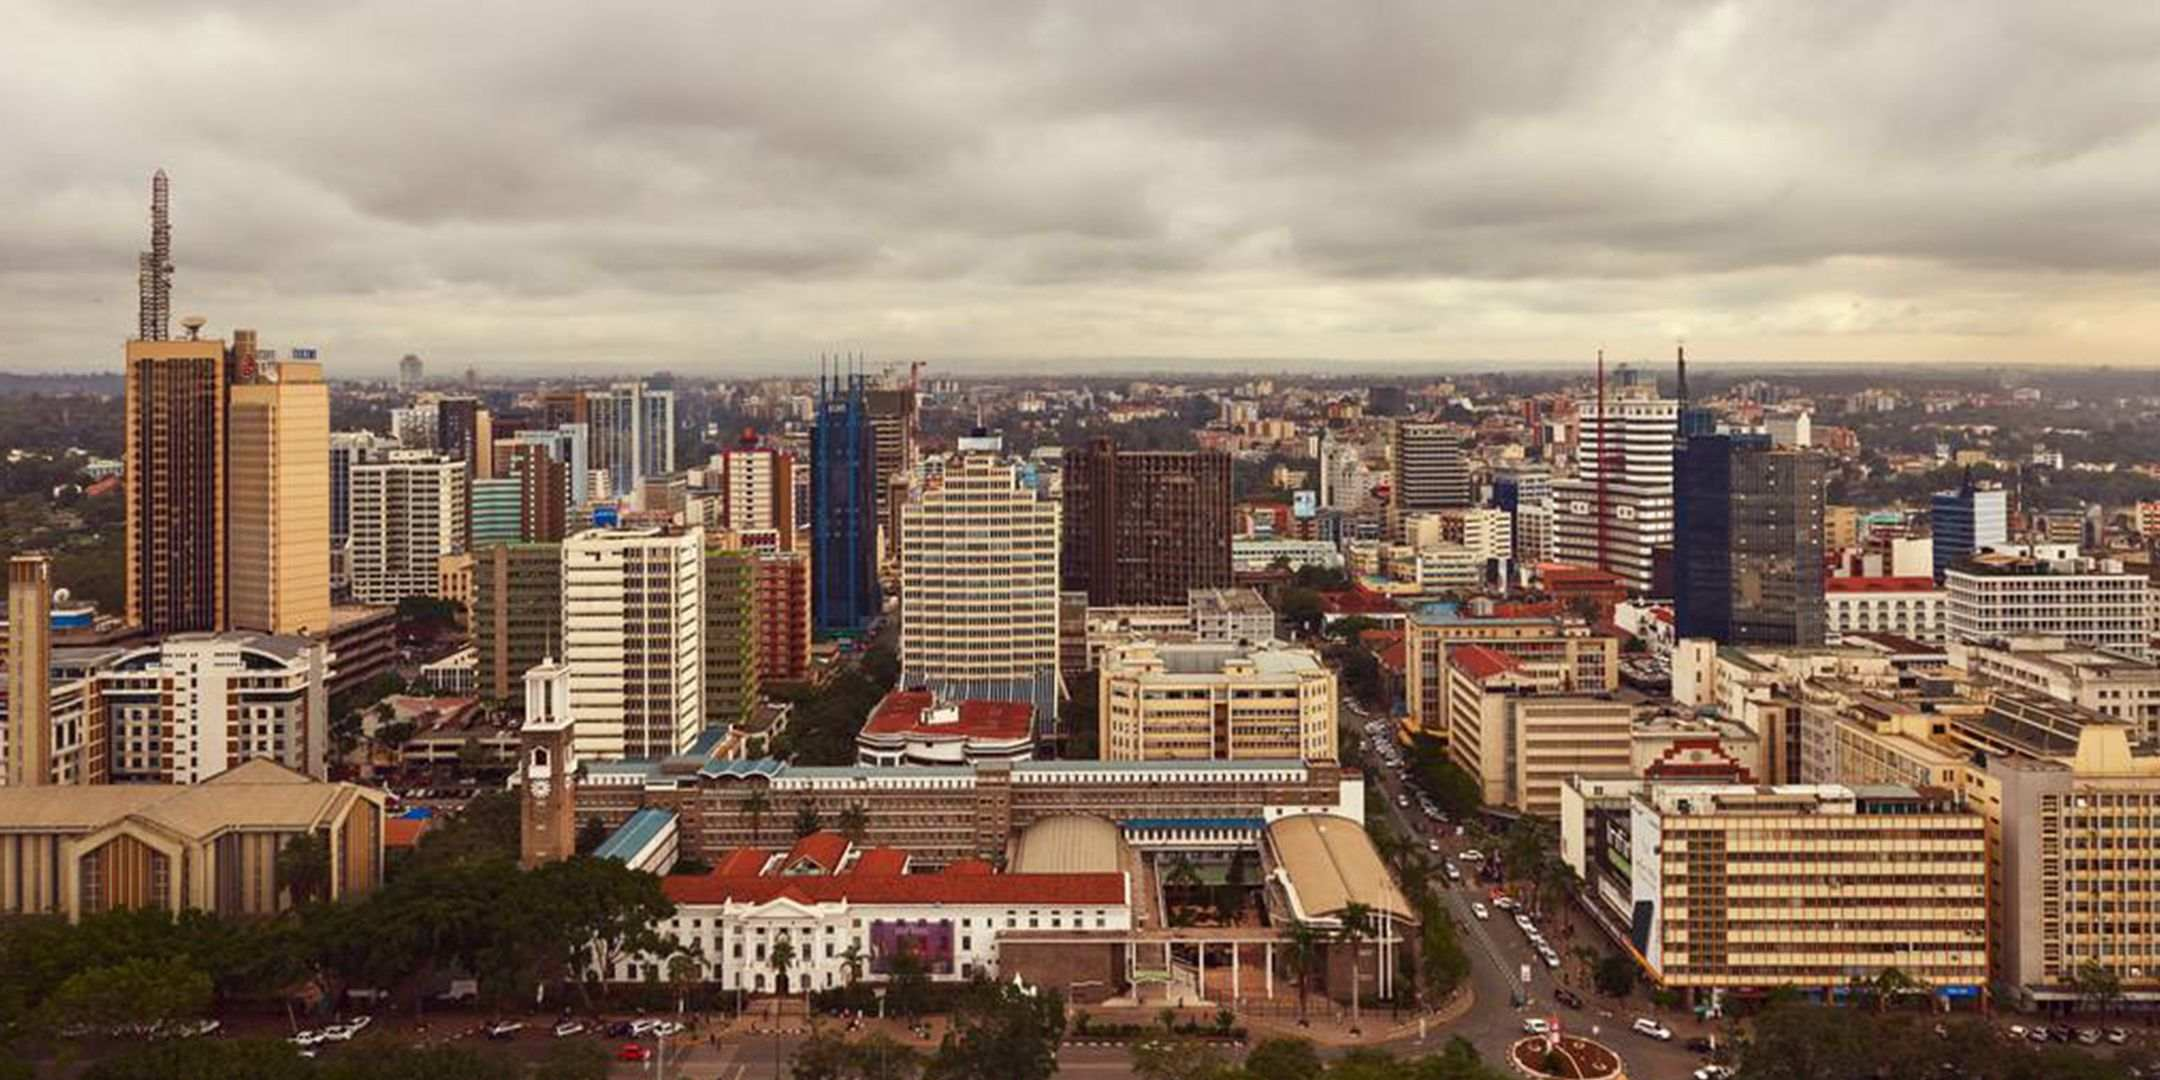 Kenyan Regulator Commends Its Regulatory Sandbox— Says the Test Phase Enables It to Have Interactions With Innovators